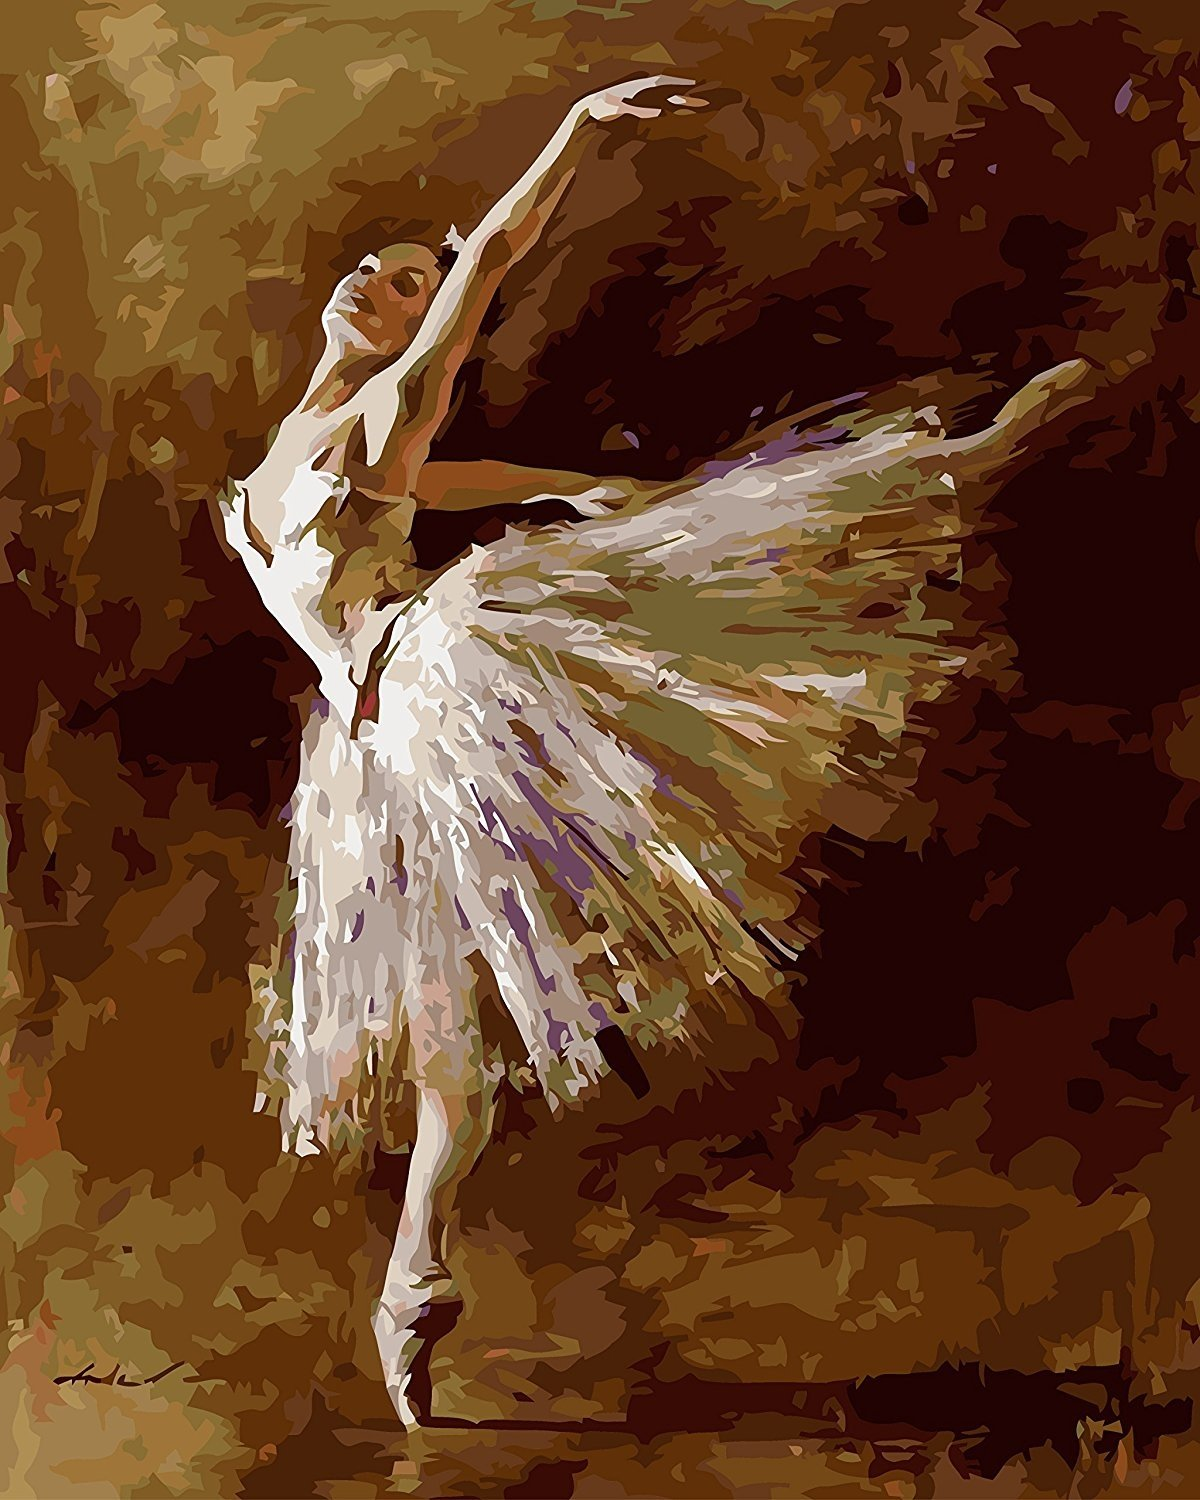 DIY Digital Canvas Oil Painting Gift for Adults Kids Paint by Number Kits Home Decorations- Ballet 16*20 inch NCFDBL